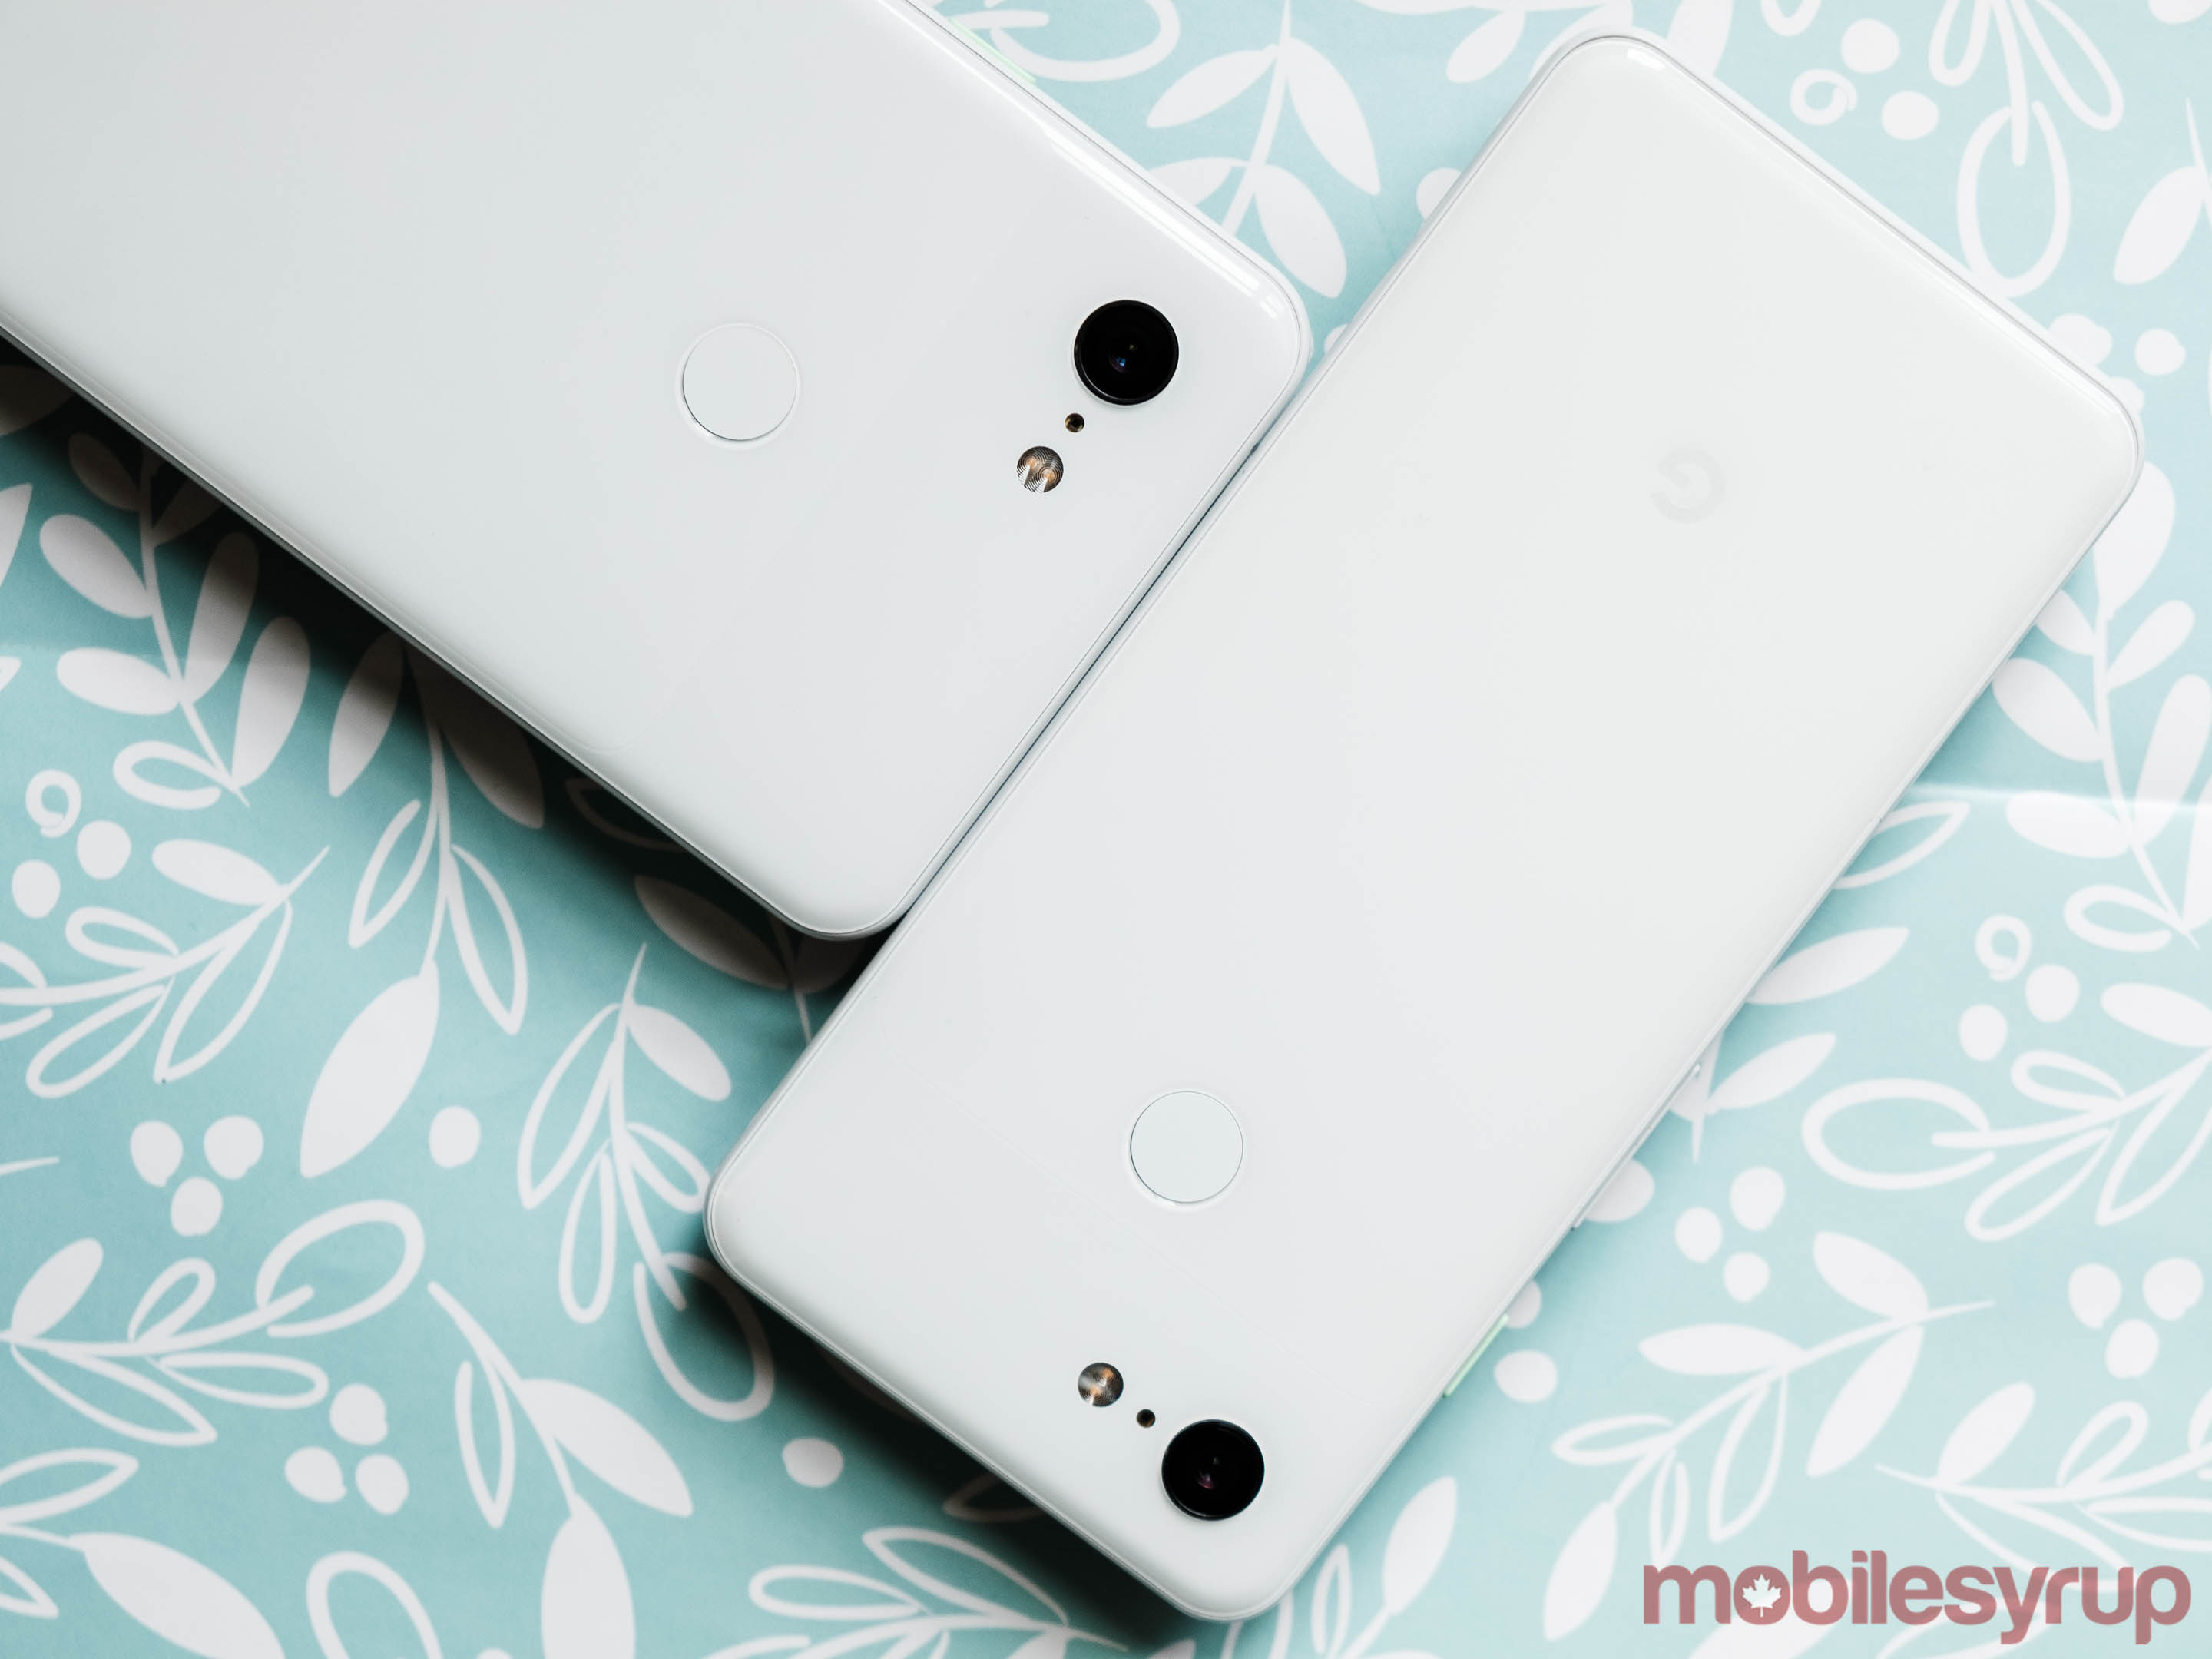 Pixel 3 and Pixel 3 XL Review: All the small things